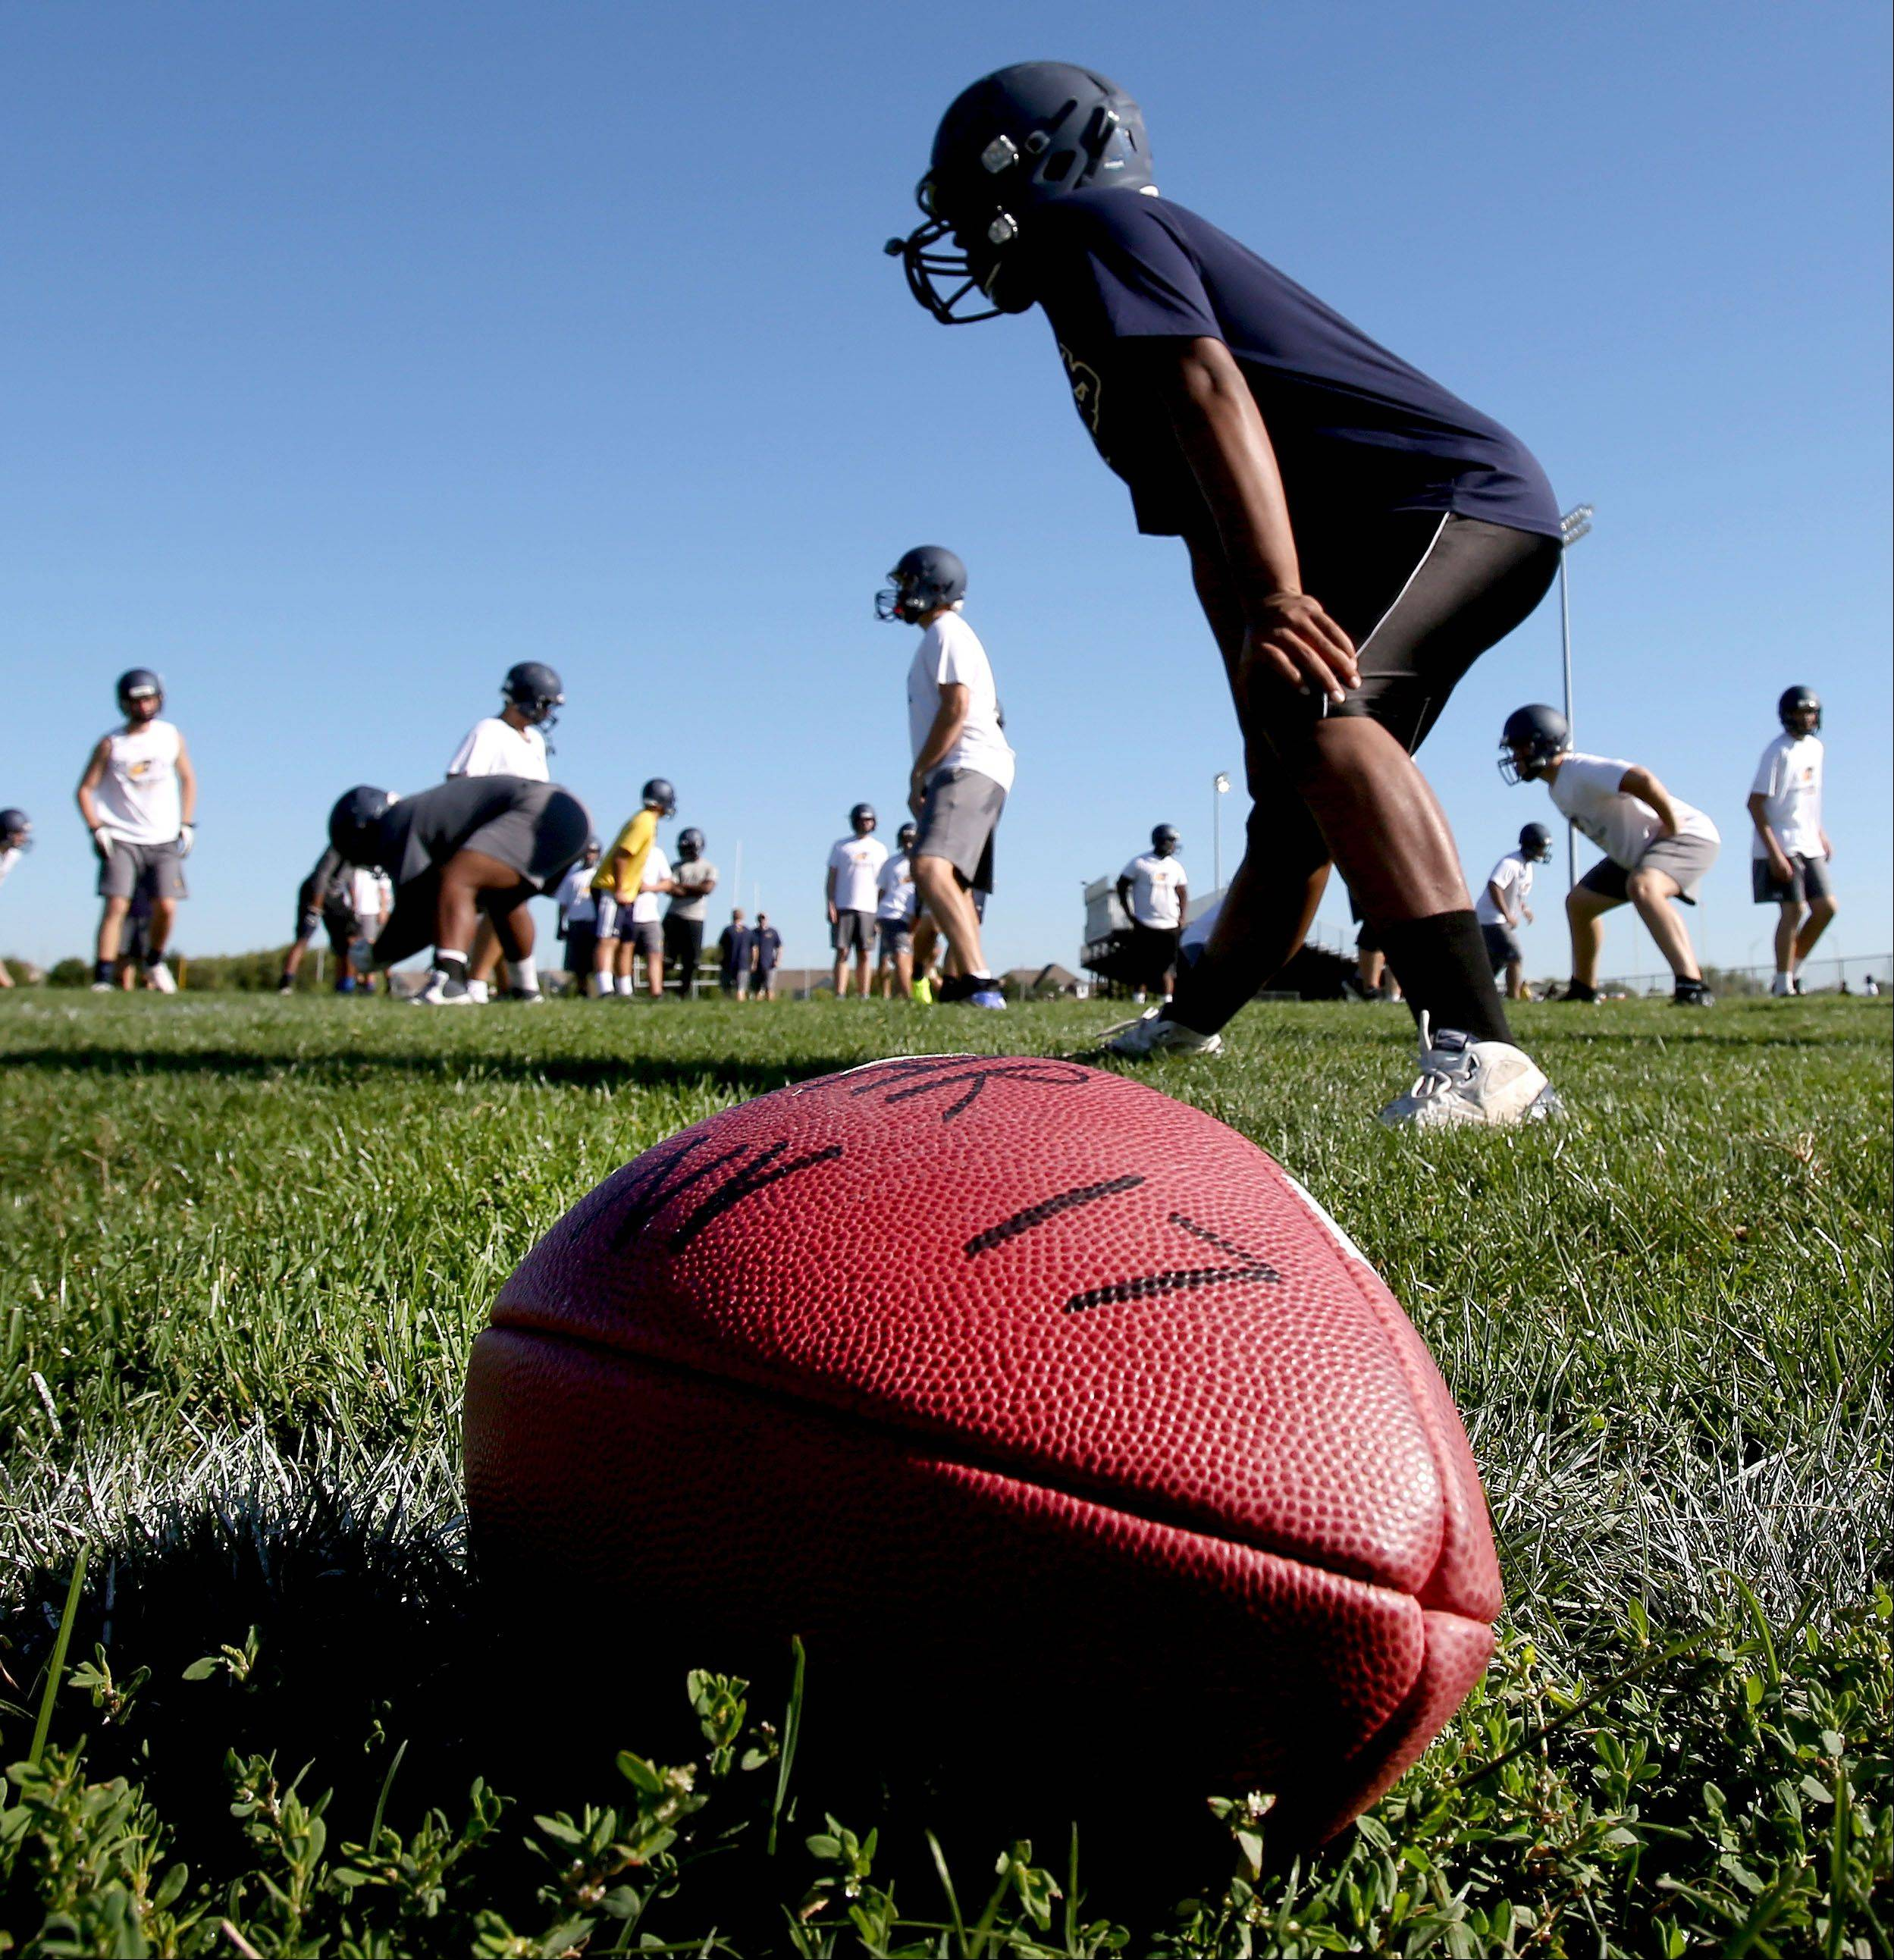 The Neuqua Valley football team warms up before the first day of practice.